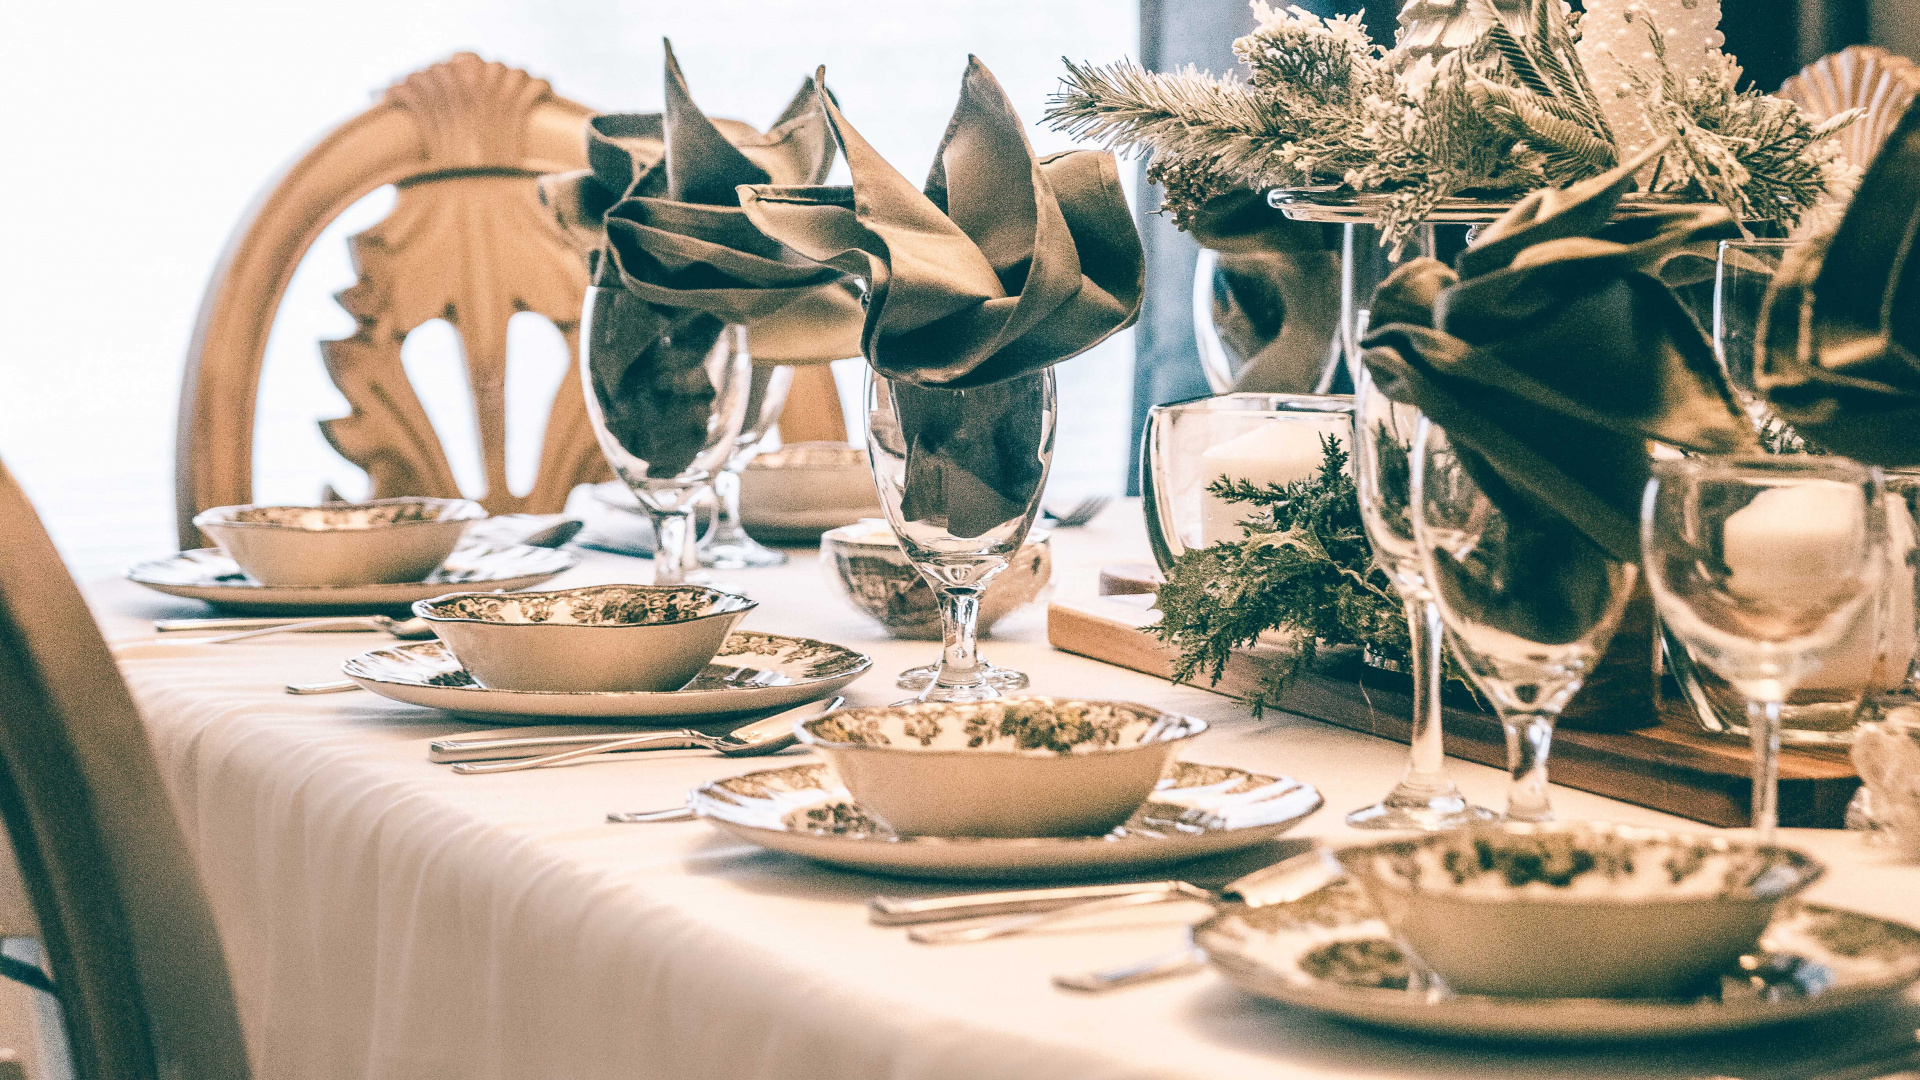 Social Pantry's Alex Head on Christmas table decorations